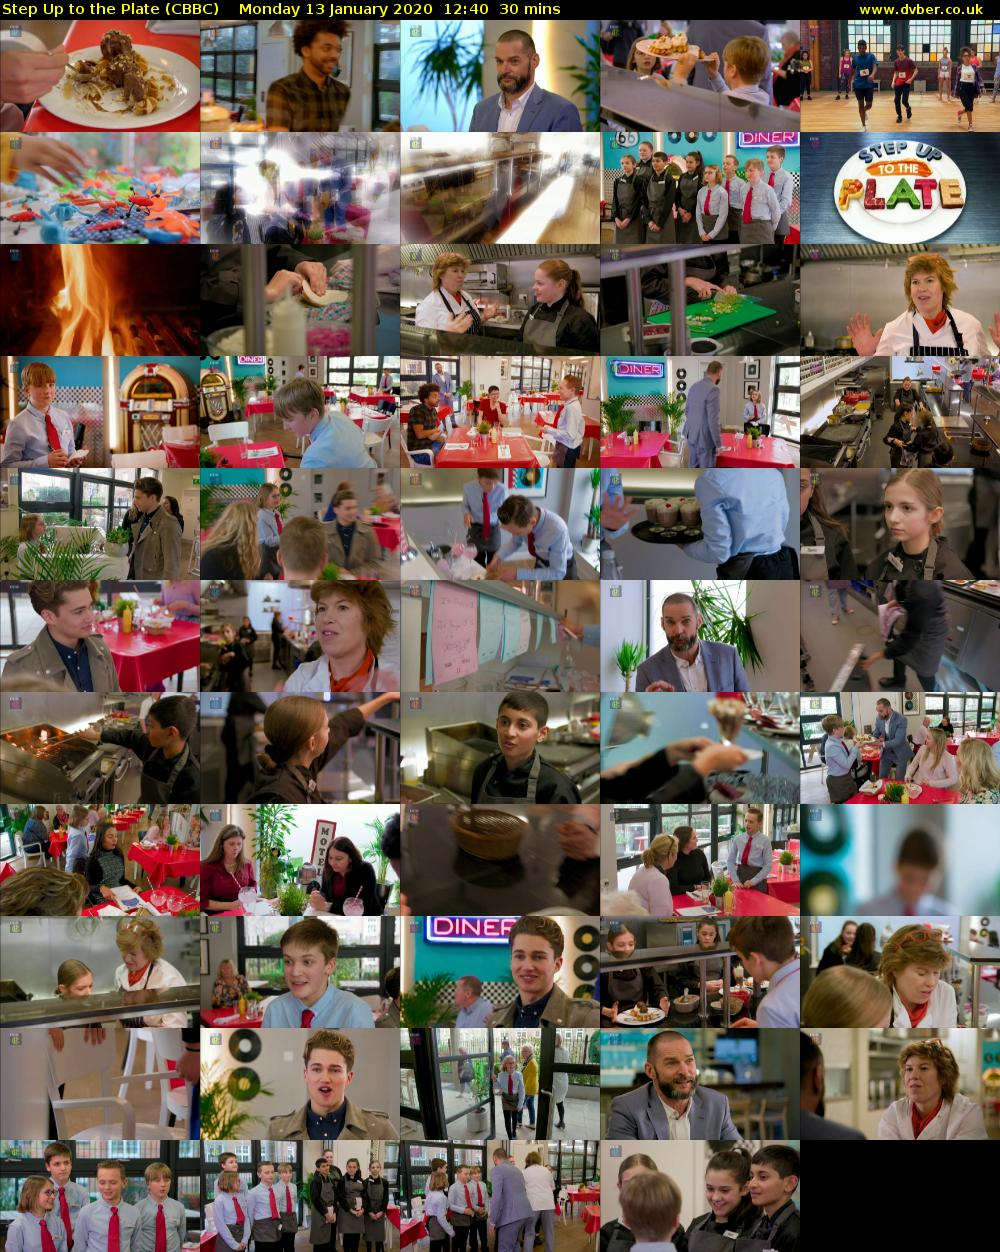 Step Up to the Plate (CBBC) Monday 13 January 2020 12:40 - 13:10